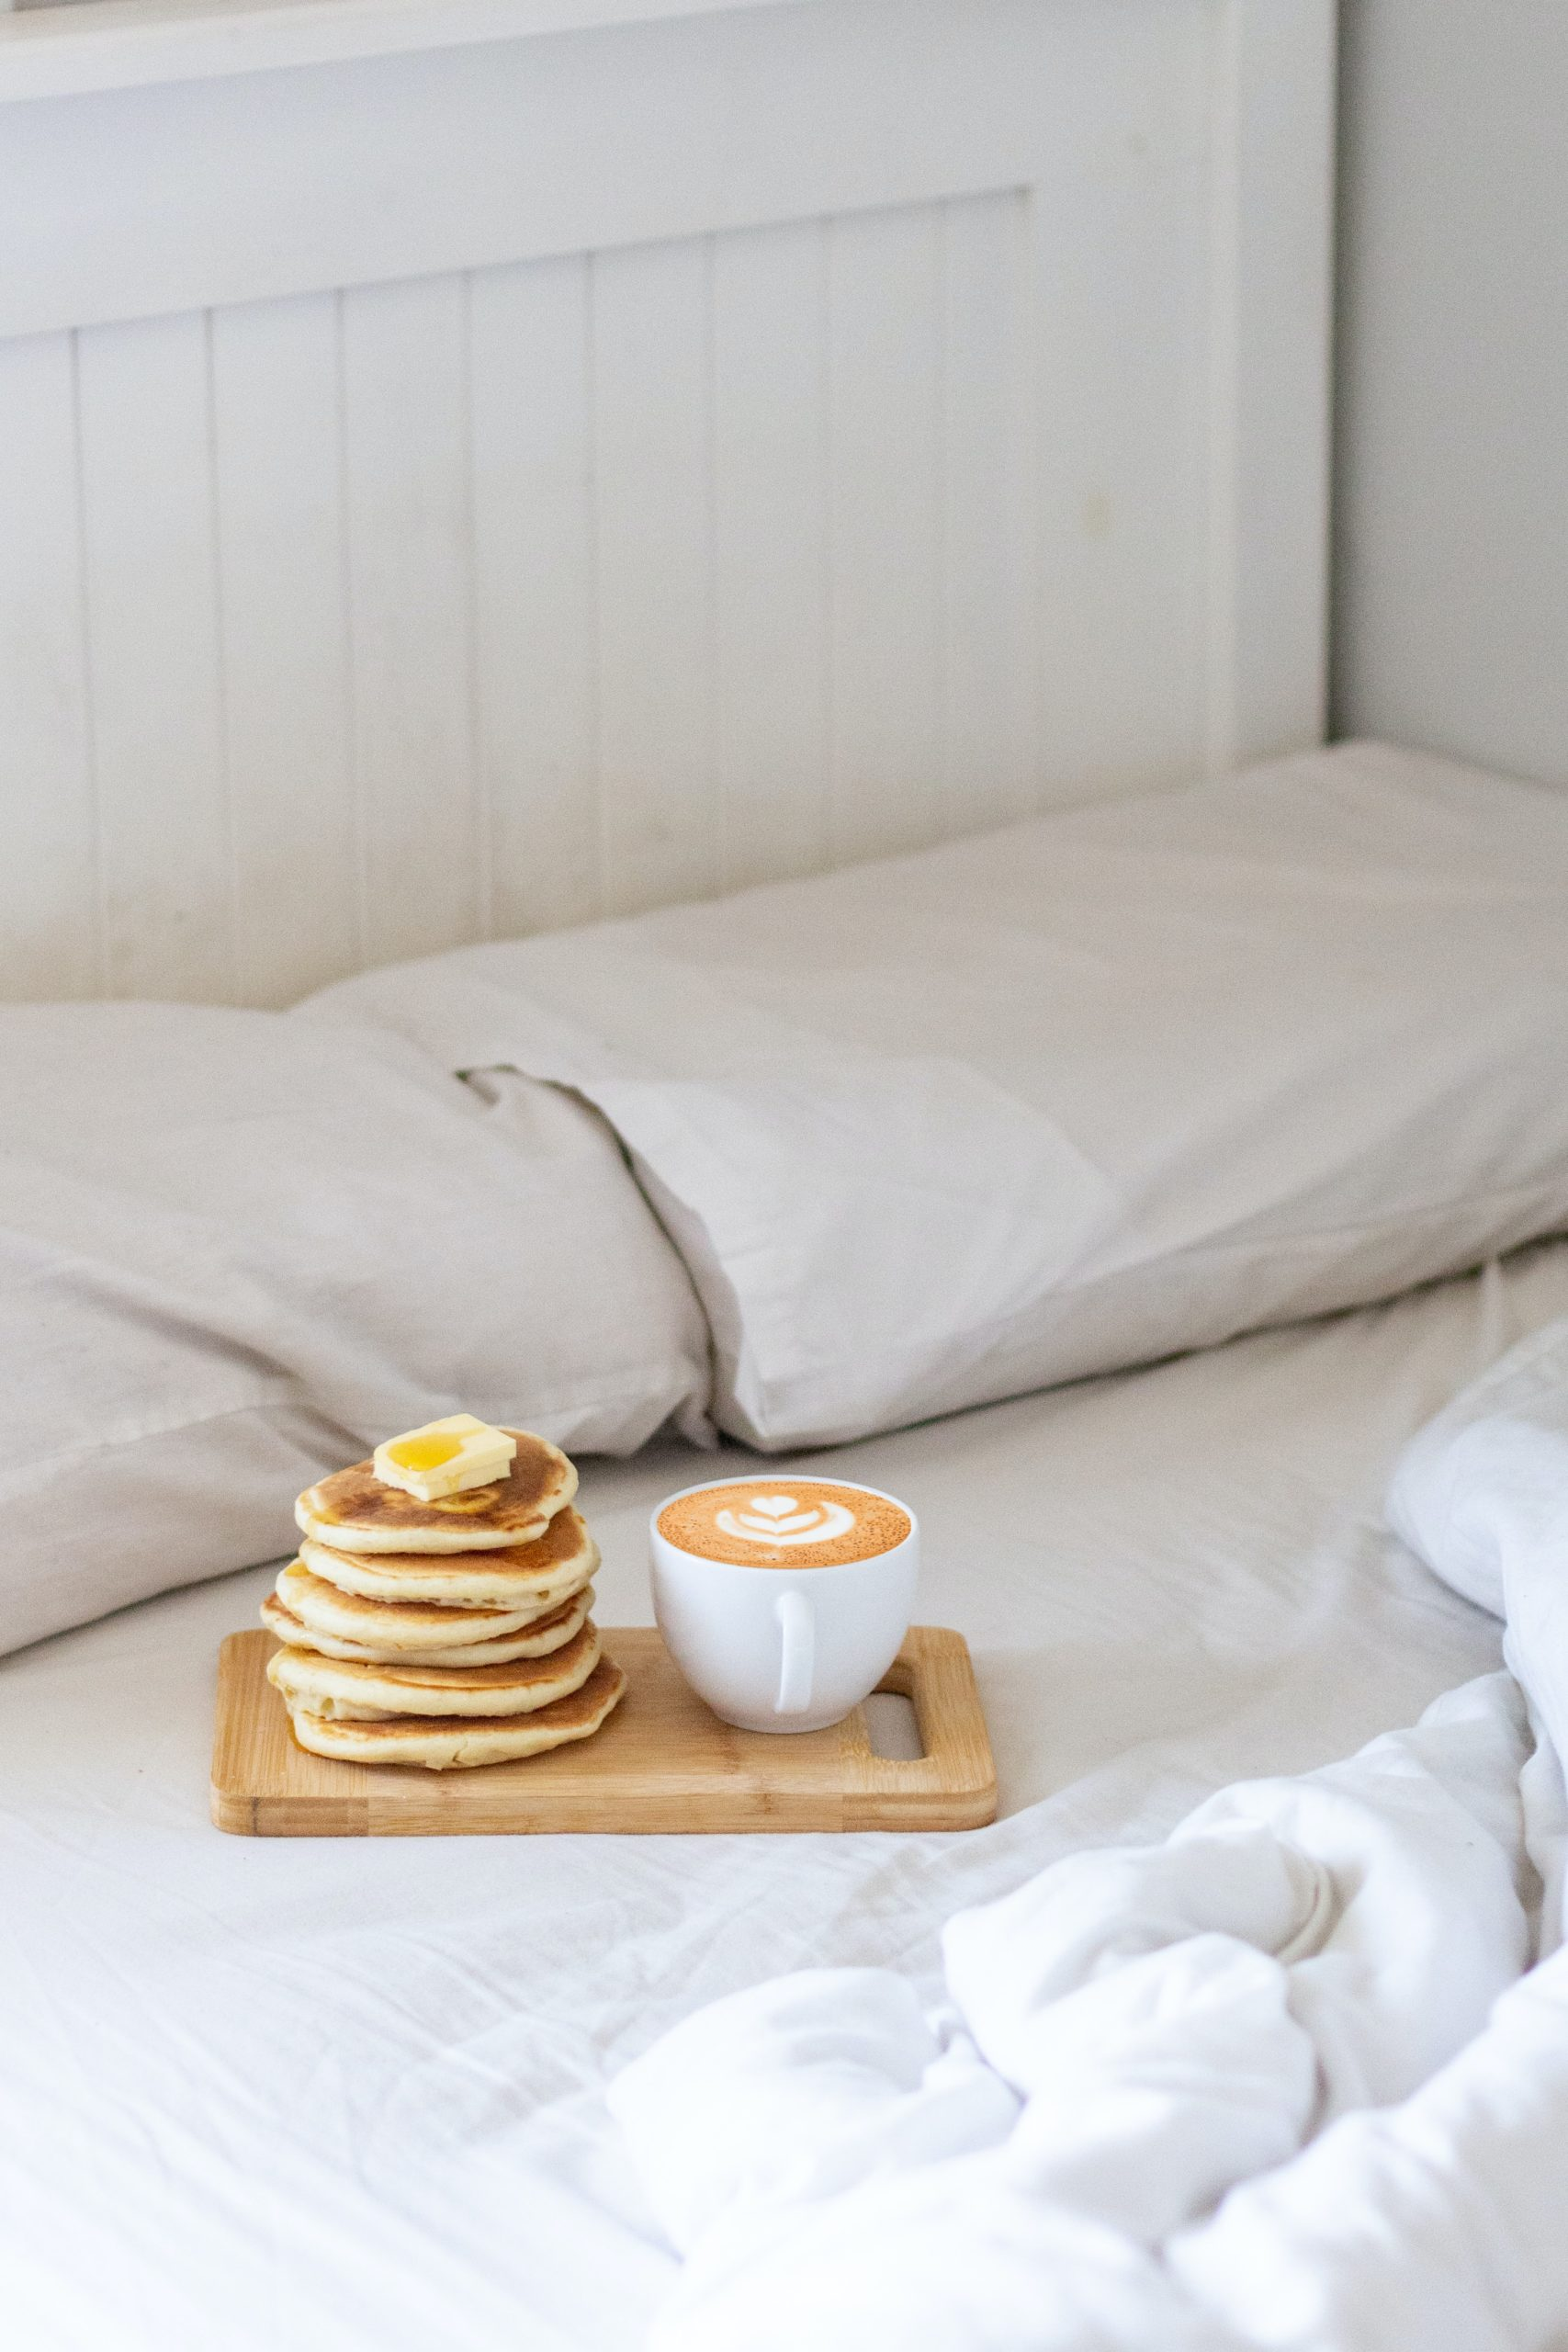 An image of an unmade bed, with pancakes and a latte, suggest self care ideas for Highly Sensitive People